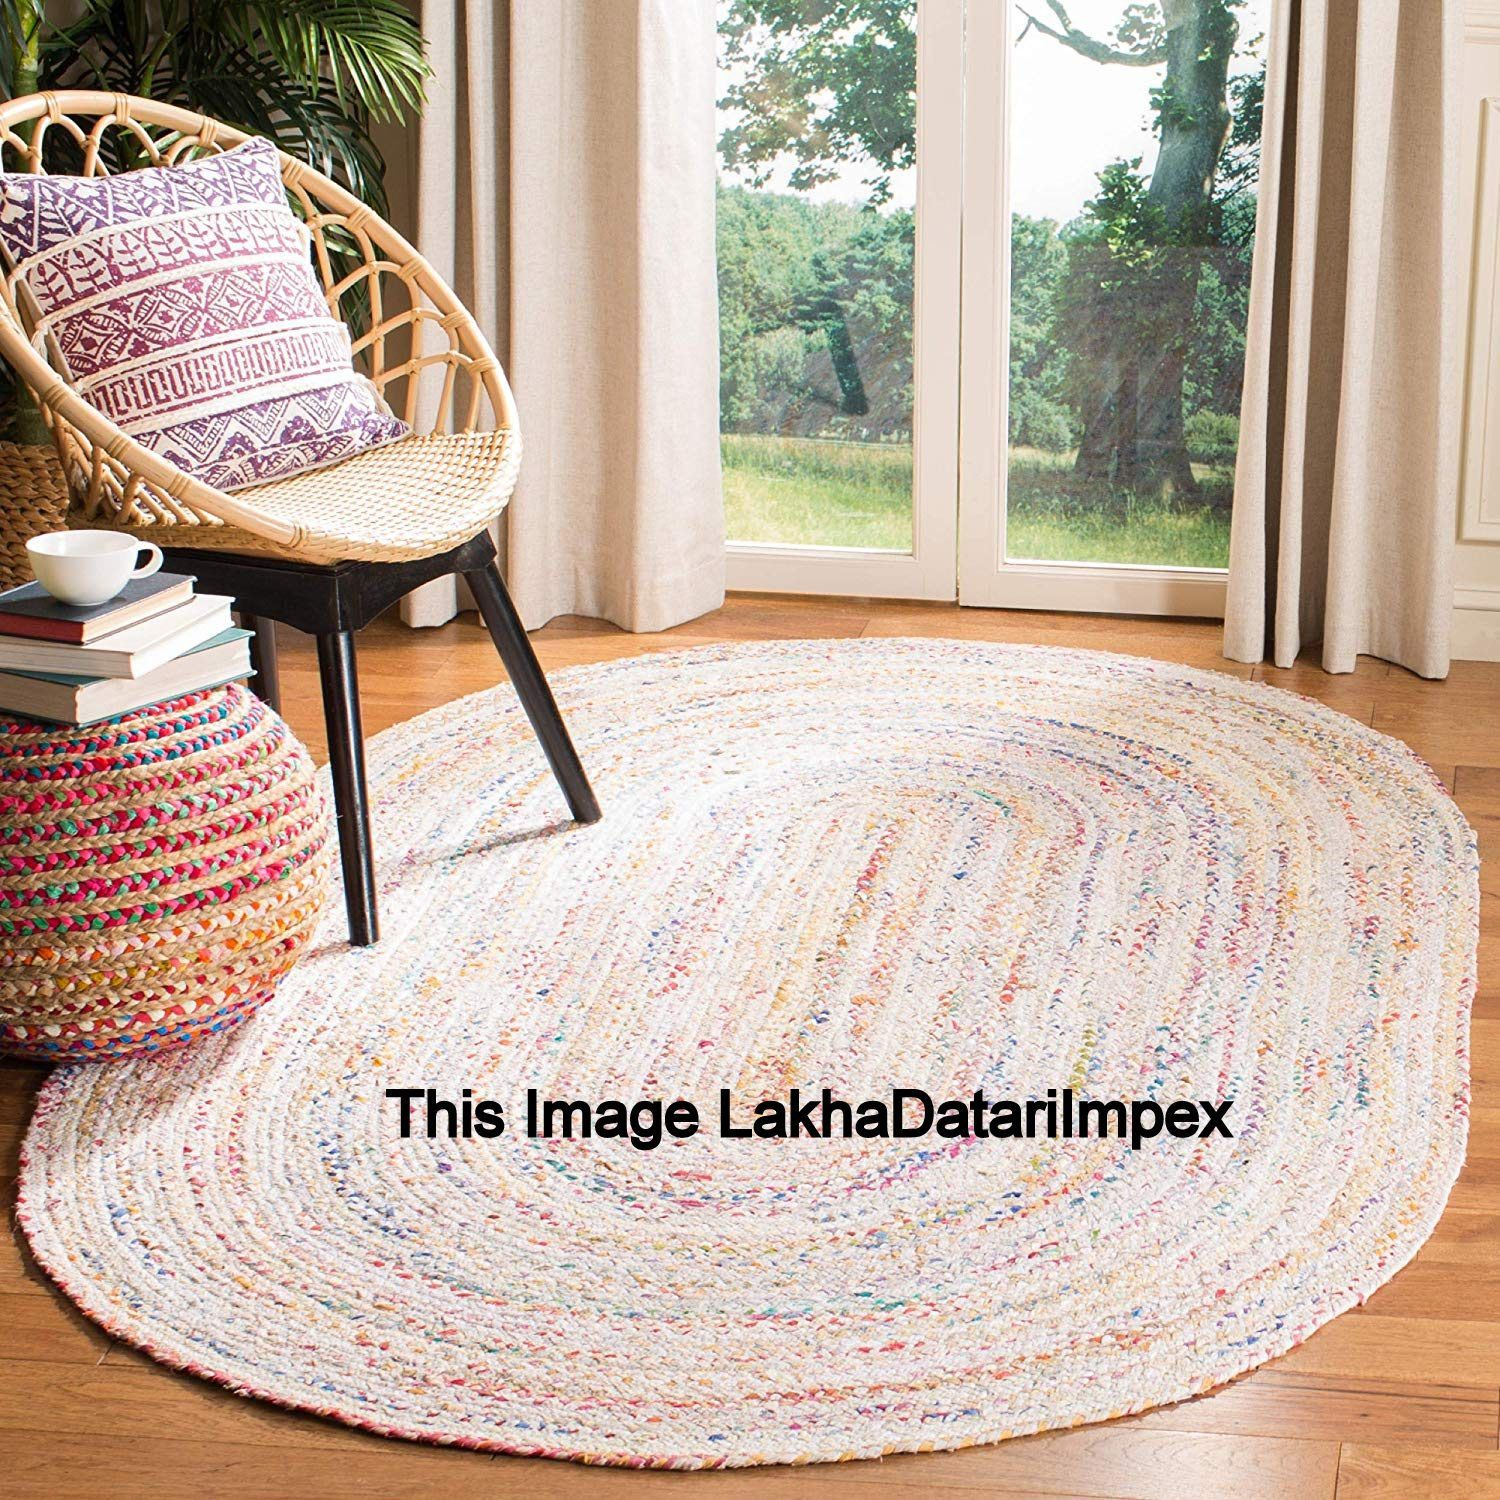 Ovel Shape Jute Floor Rugs Yoga Mat Indian Traditional Hand Stitched Hand-Woven Bohemian Vintage Rugs Carpet Mat Meditation Comfortable Rugs